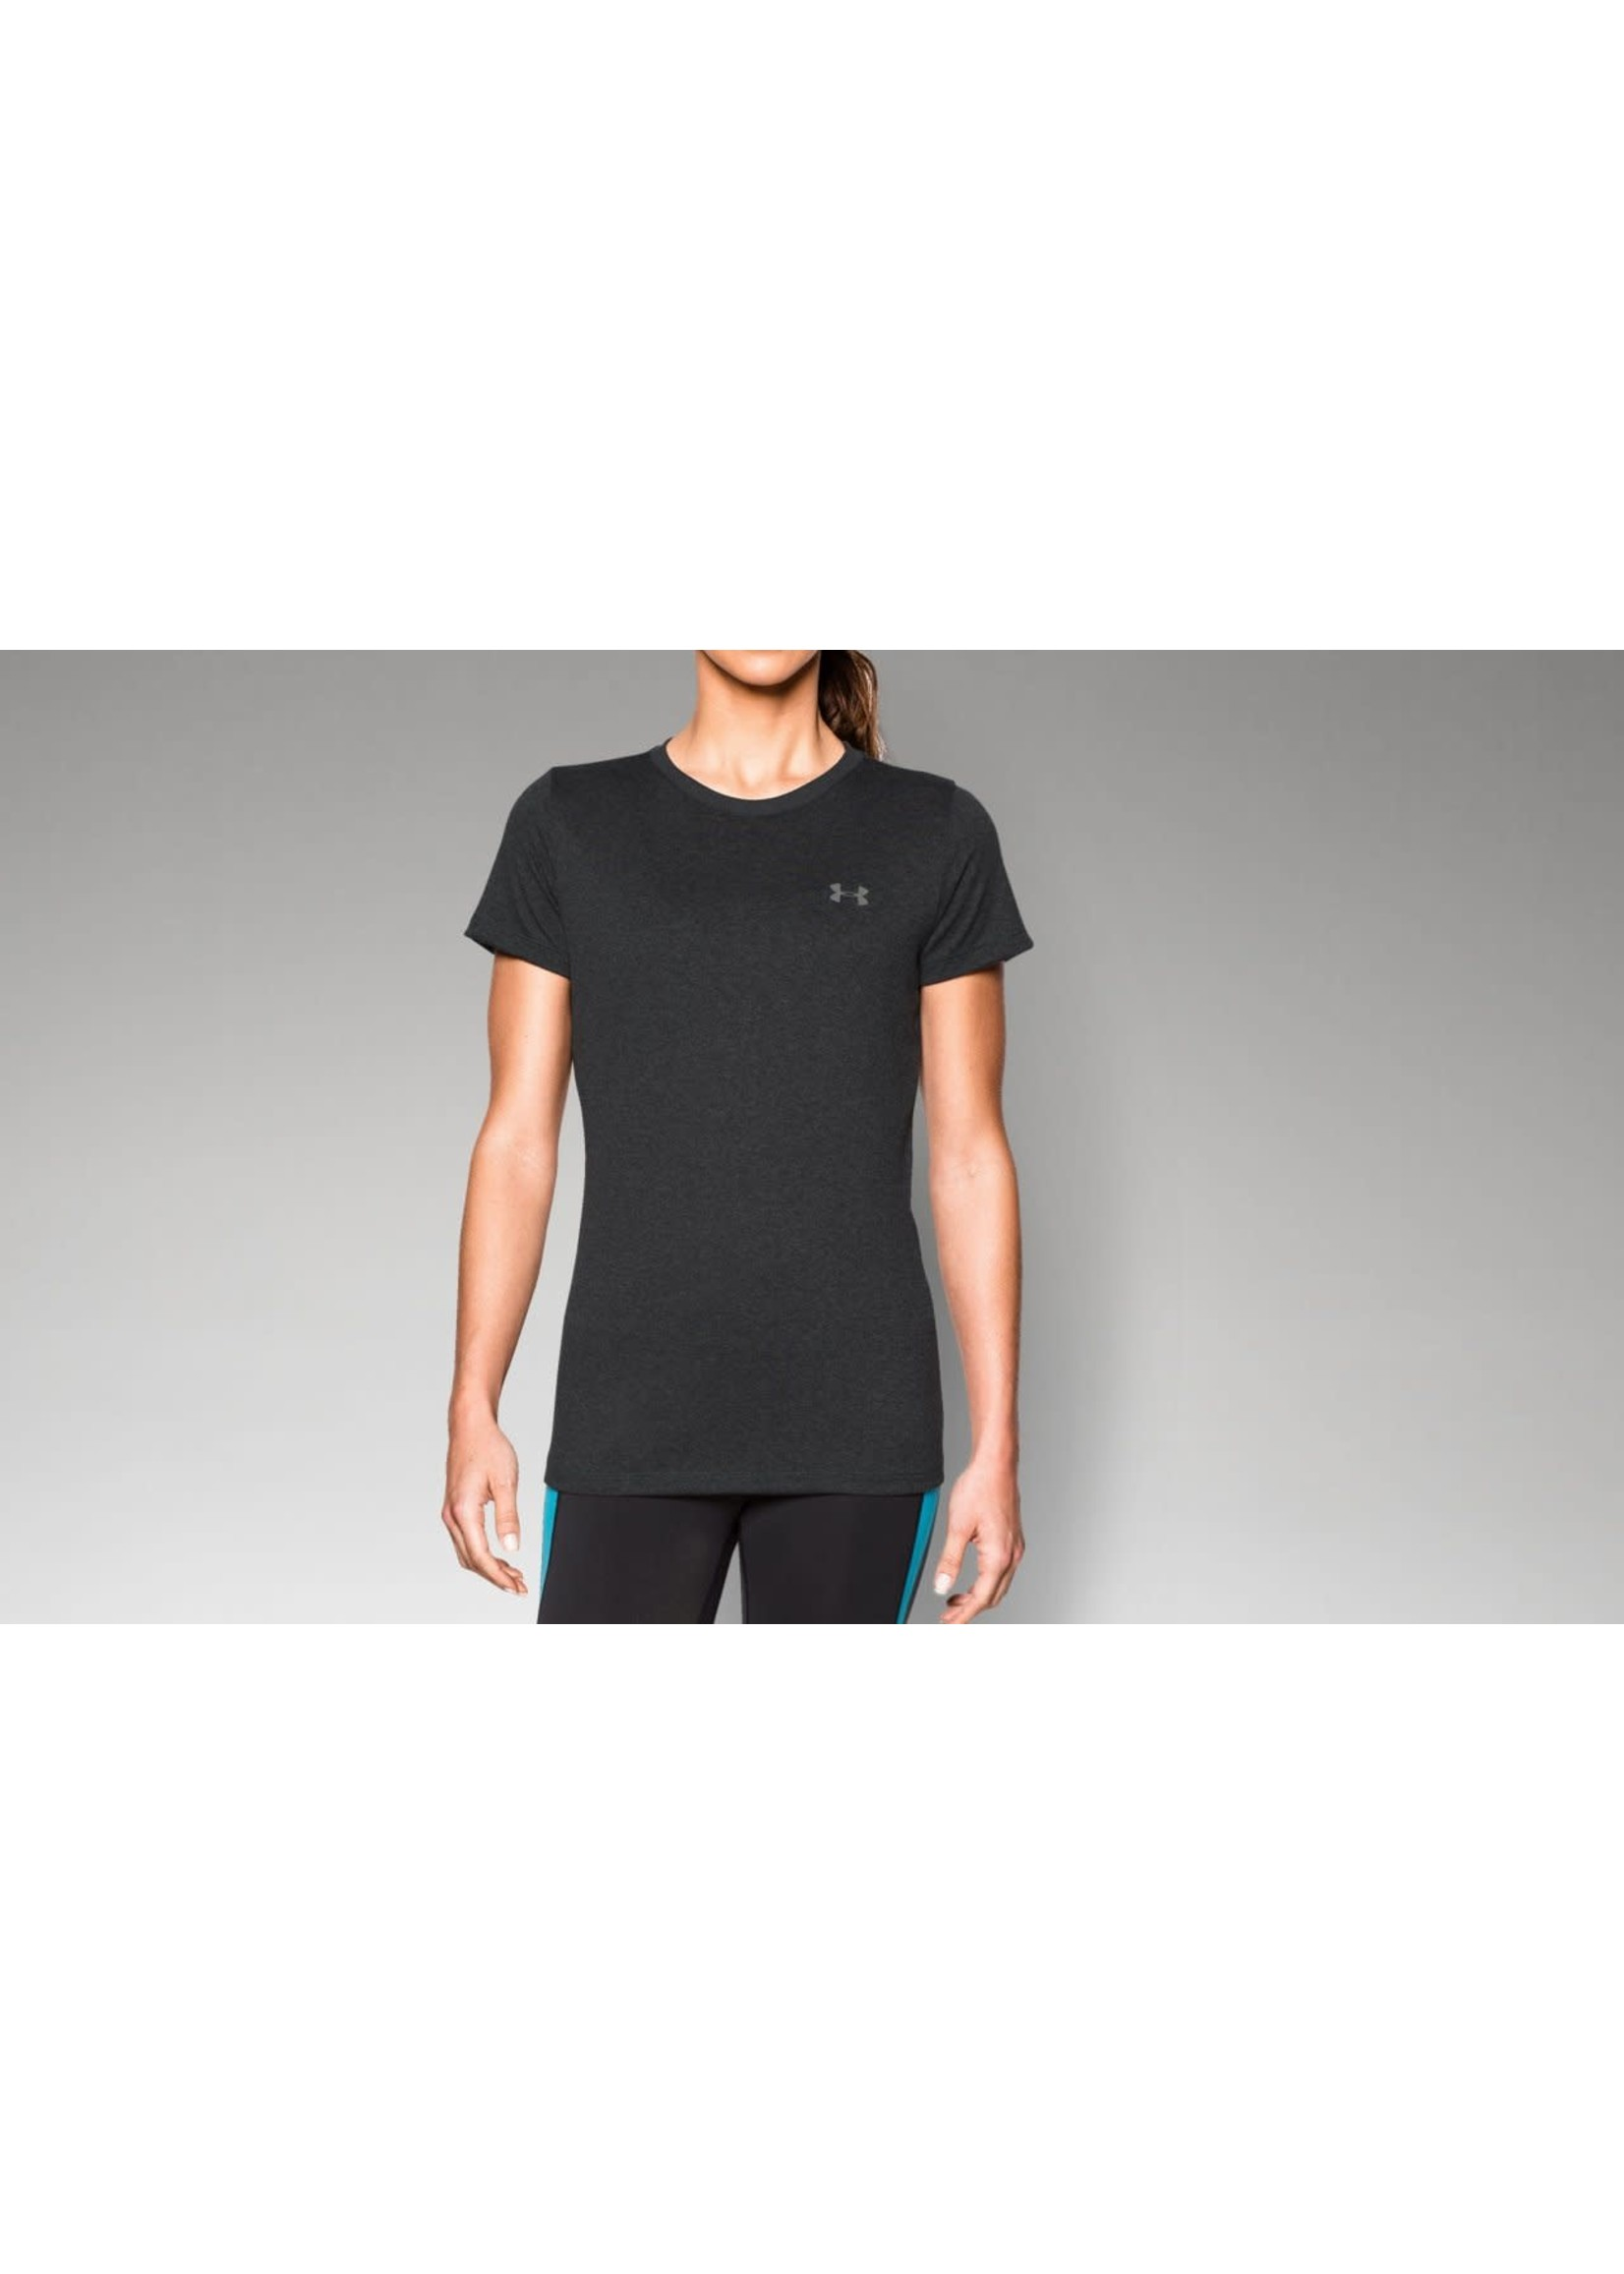 Under Armour TECH SSC - SOLID 1277207